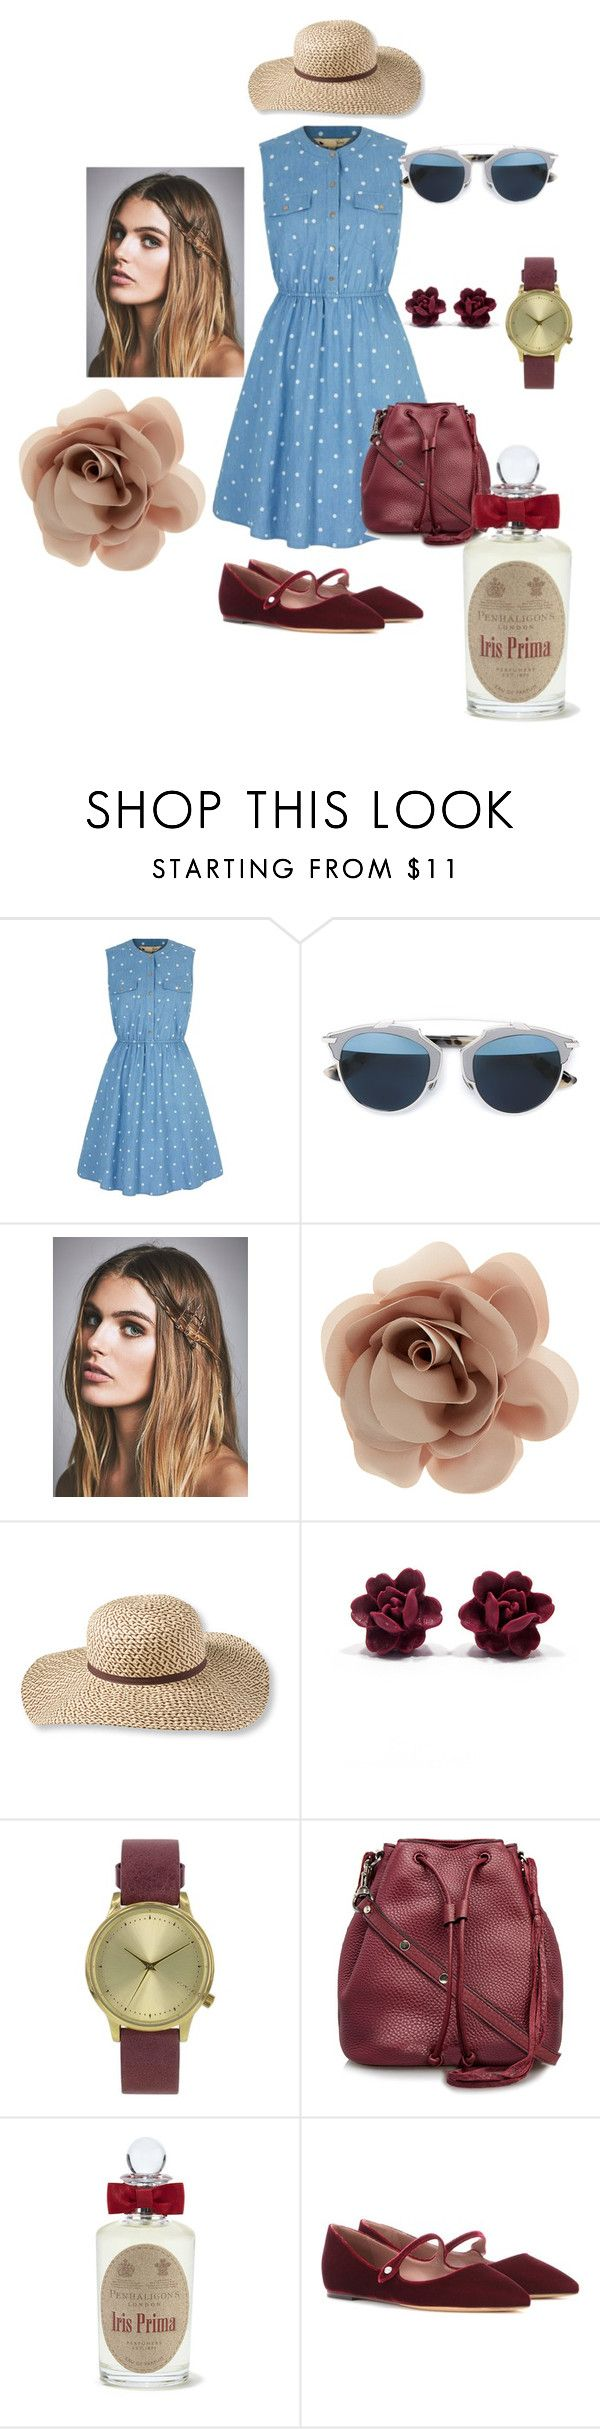 """6th"" by marialibra on Polyvore featuring Yumi, Christian Dior, Free People, Accessorize, L.L.Bean, Topshop, Rebecca Minkoff, PENHALIGON'S, Tabitha Simmons and women's clothing"